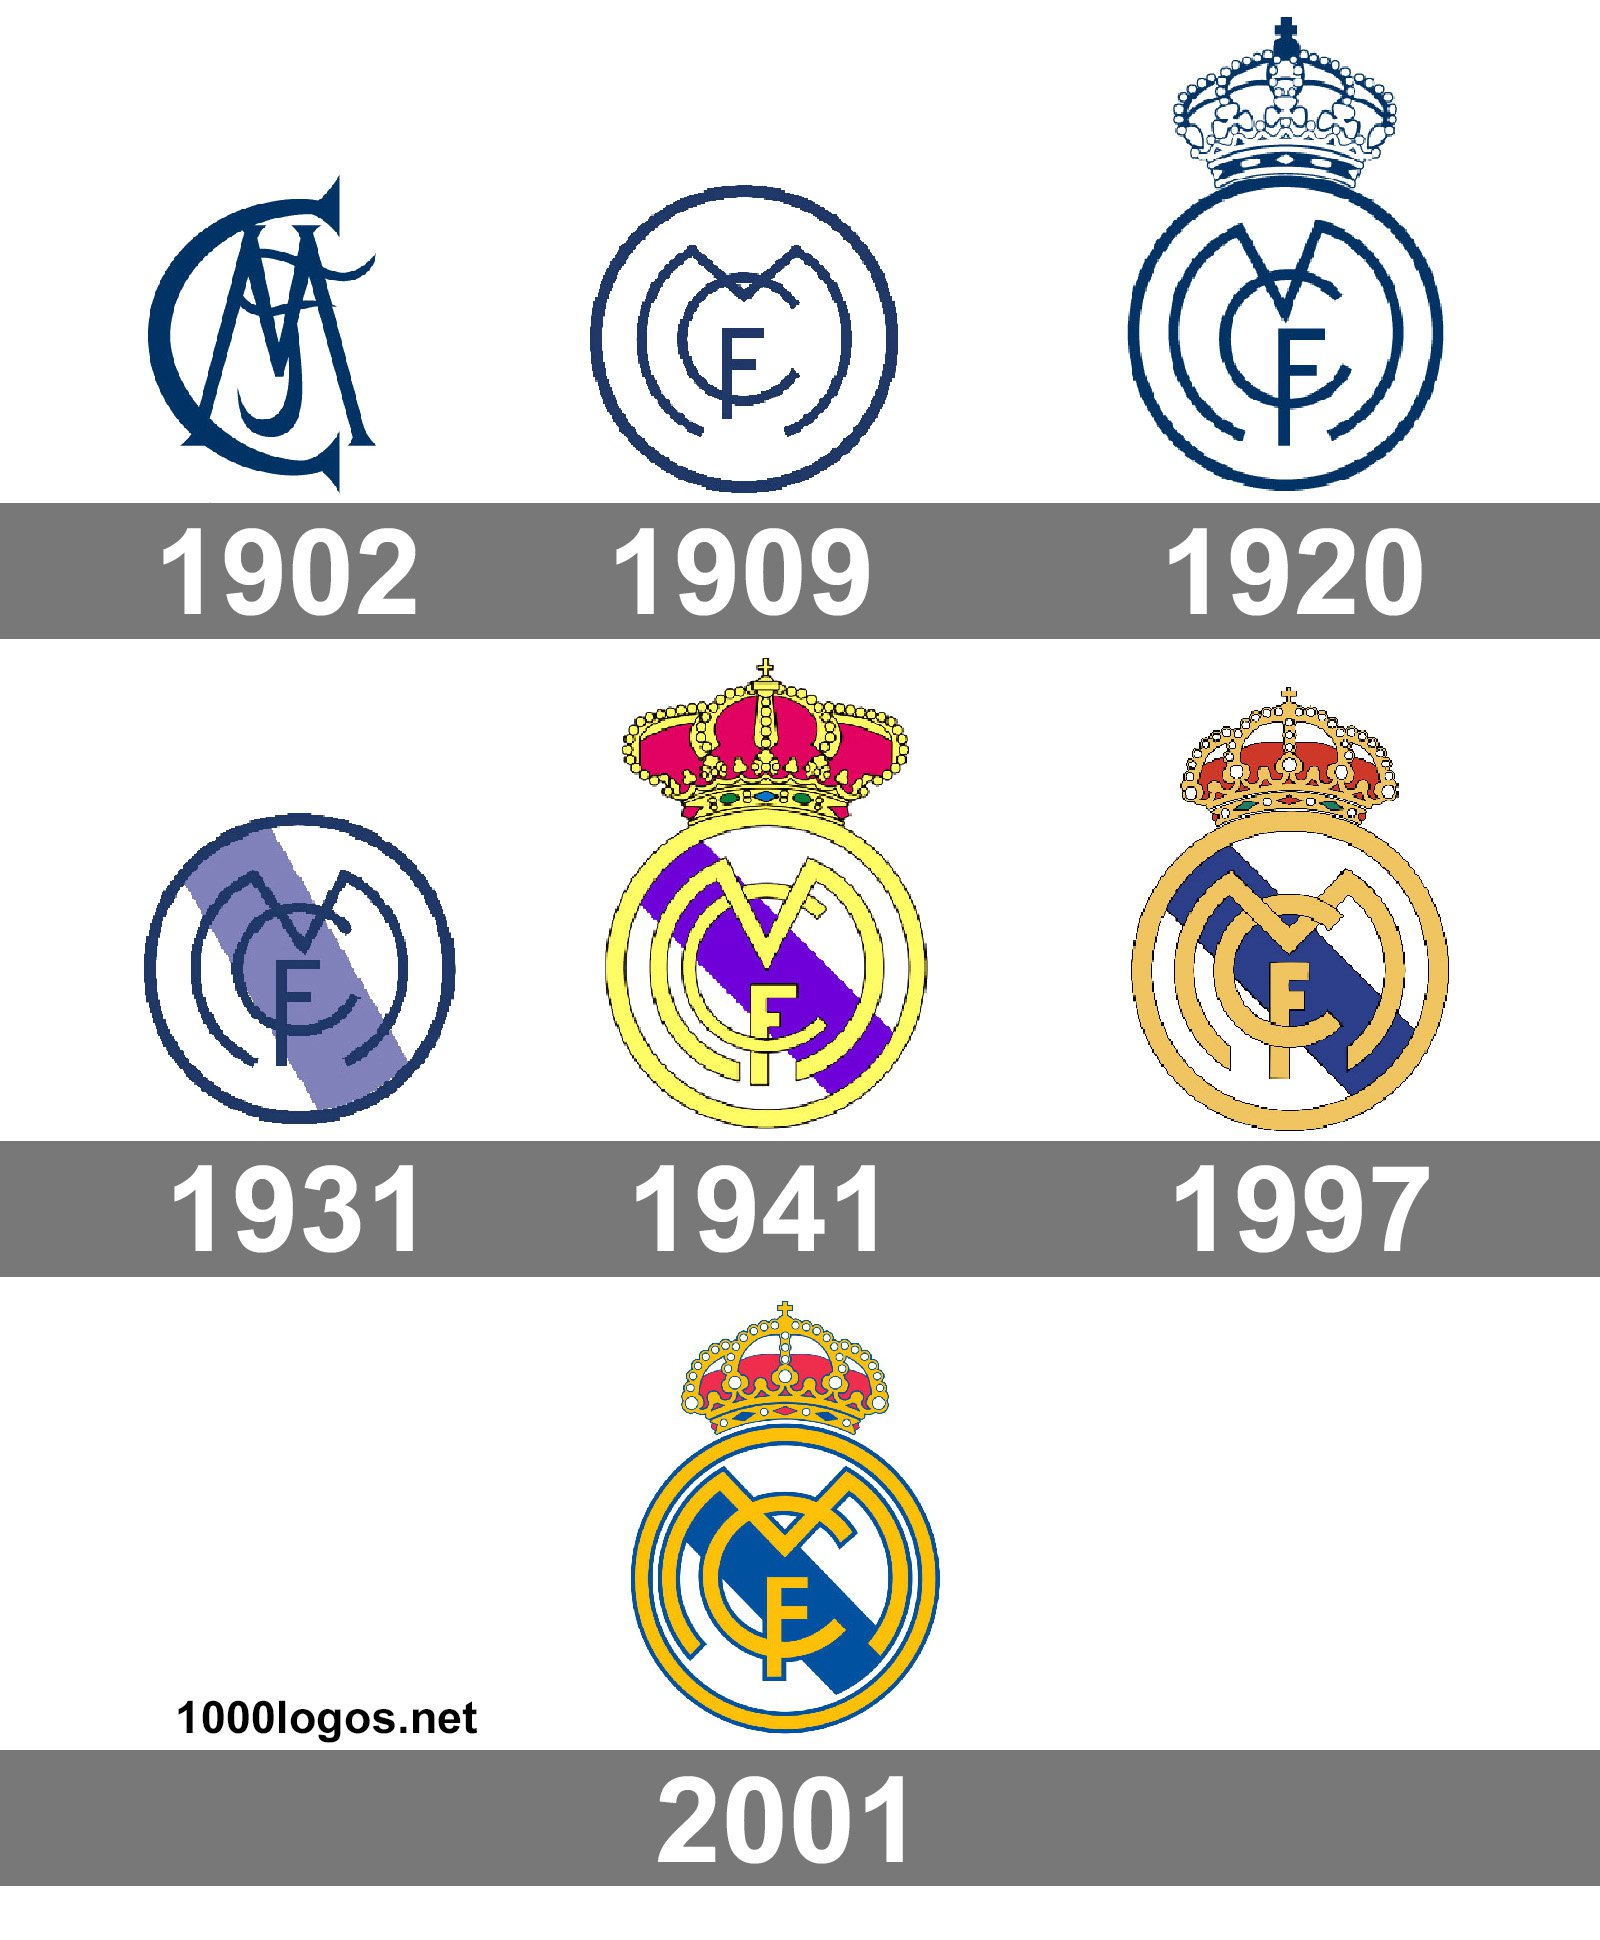 Real madrid logo real madrid symbol meaning history and evolution meaning and history real madrid logo voltagebd Images